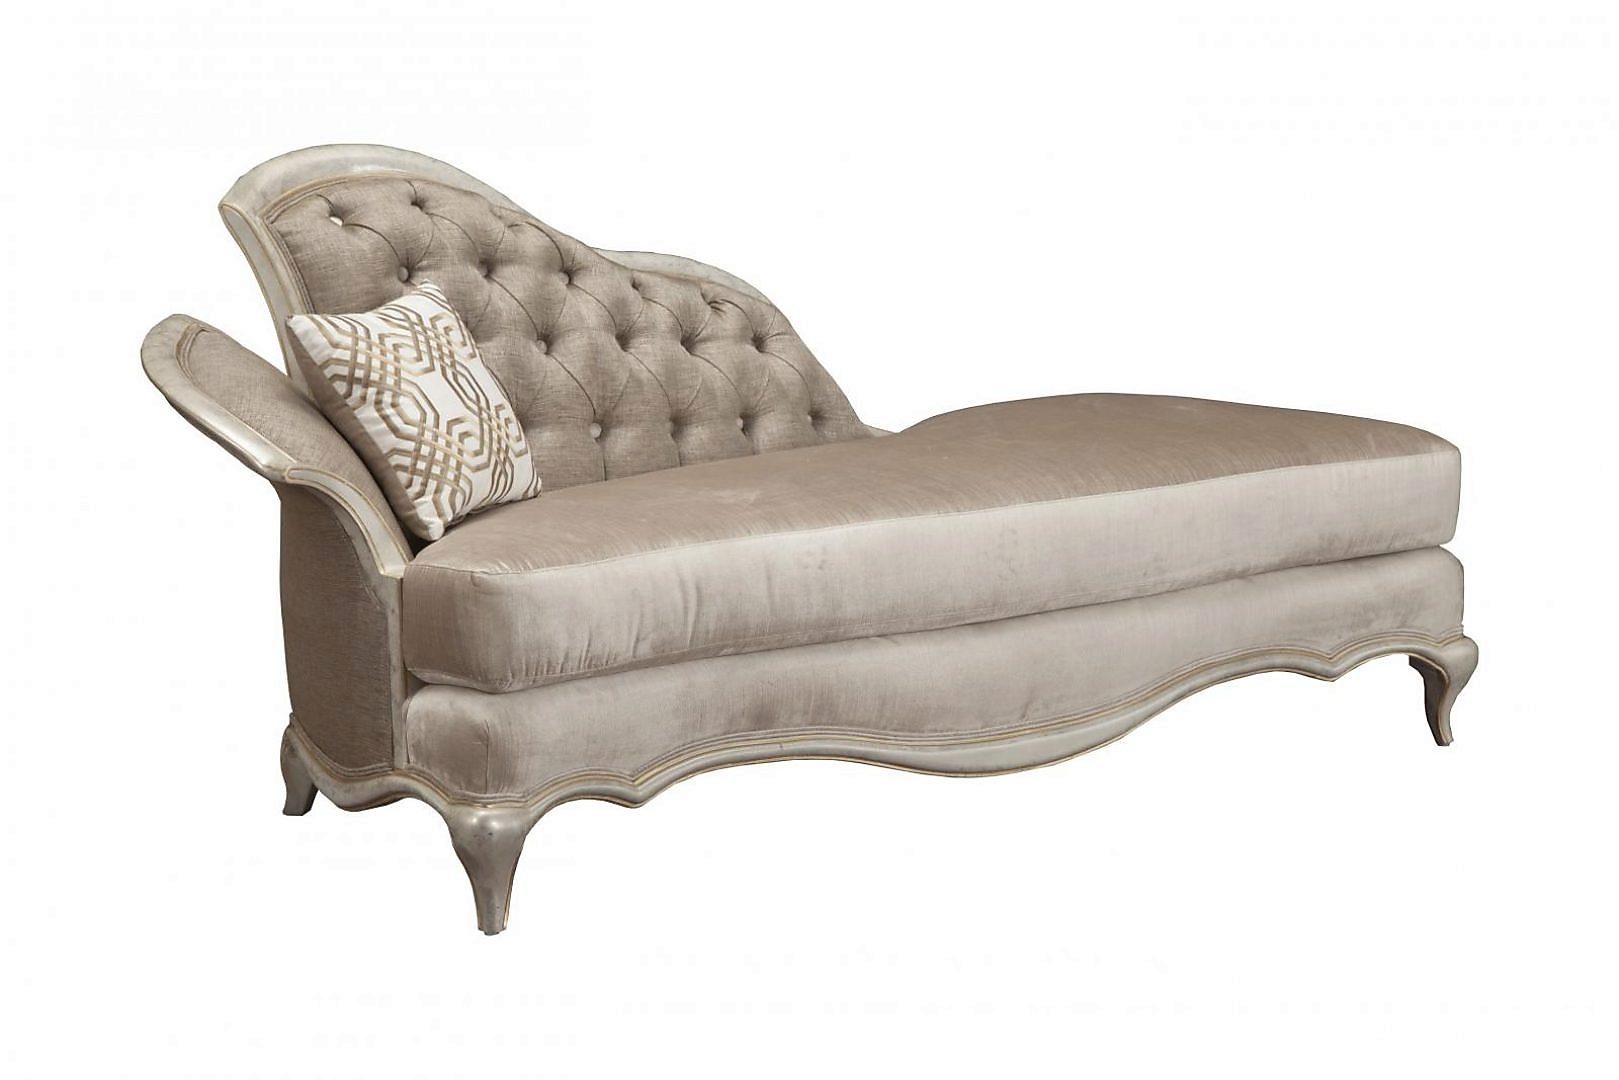 Bennetti IVORY Pearl Chenille Silver Gold Chaise Lounge Perlita Chaise Lounge Classic Traditional